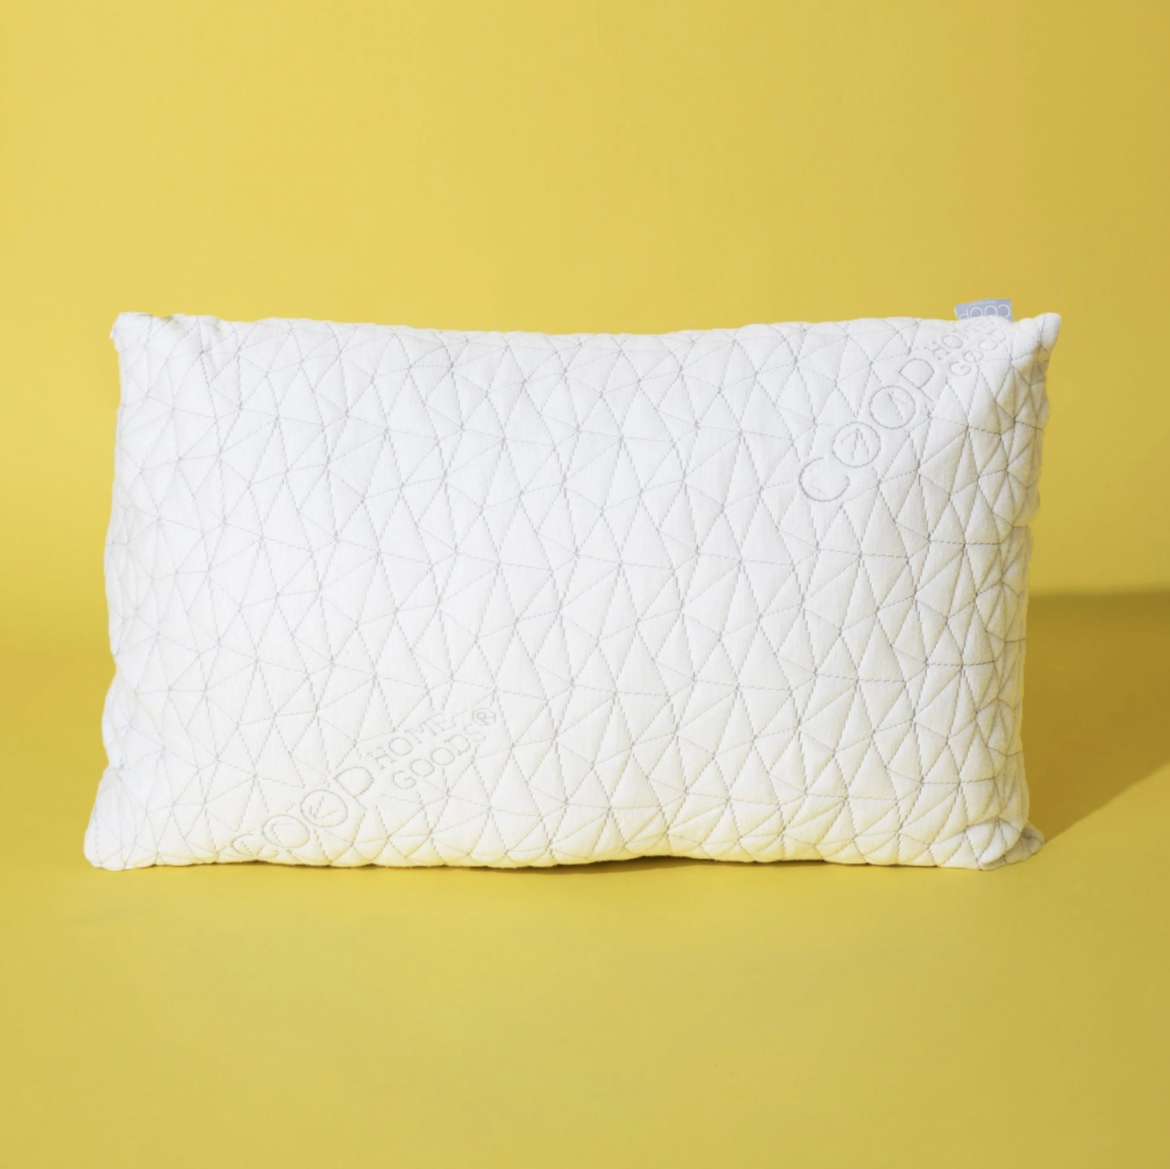 Coop Home Goods Adjustable lost Memory Foam Pillow - Best Pillows for Side Sleepers